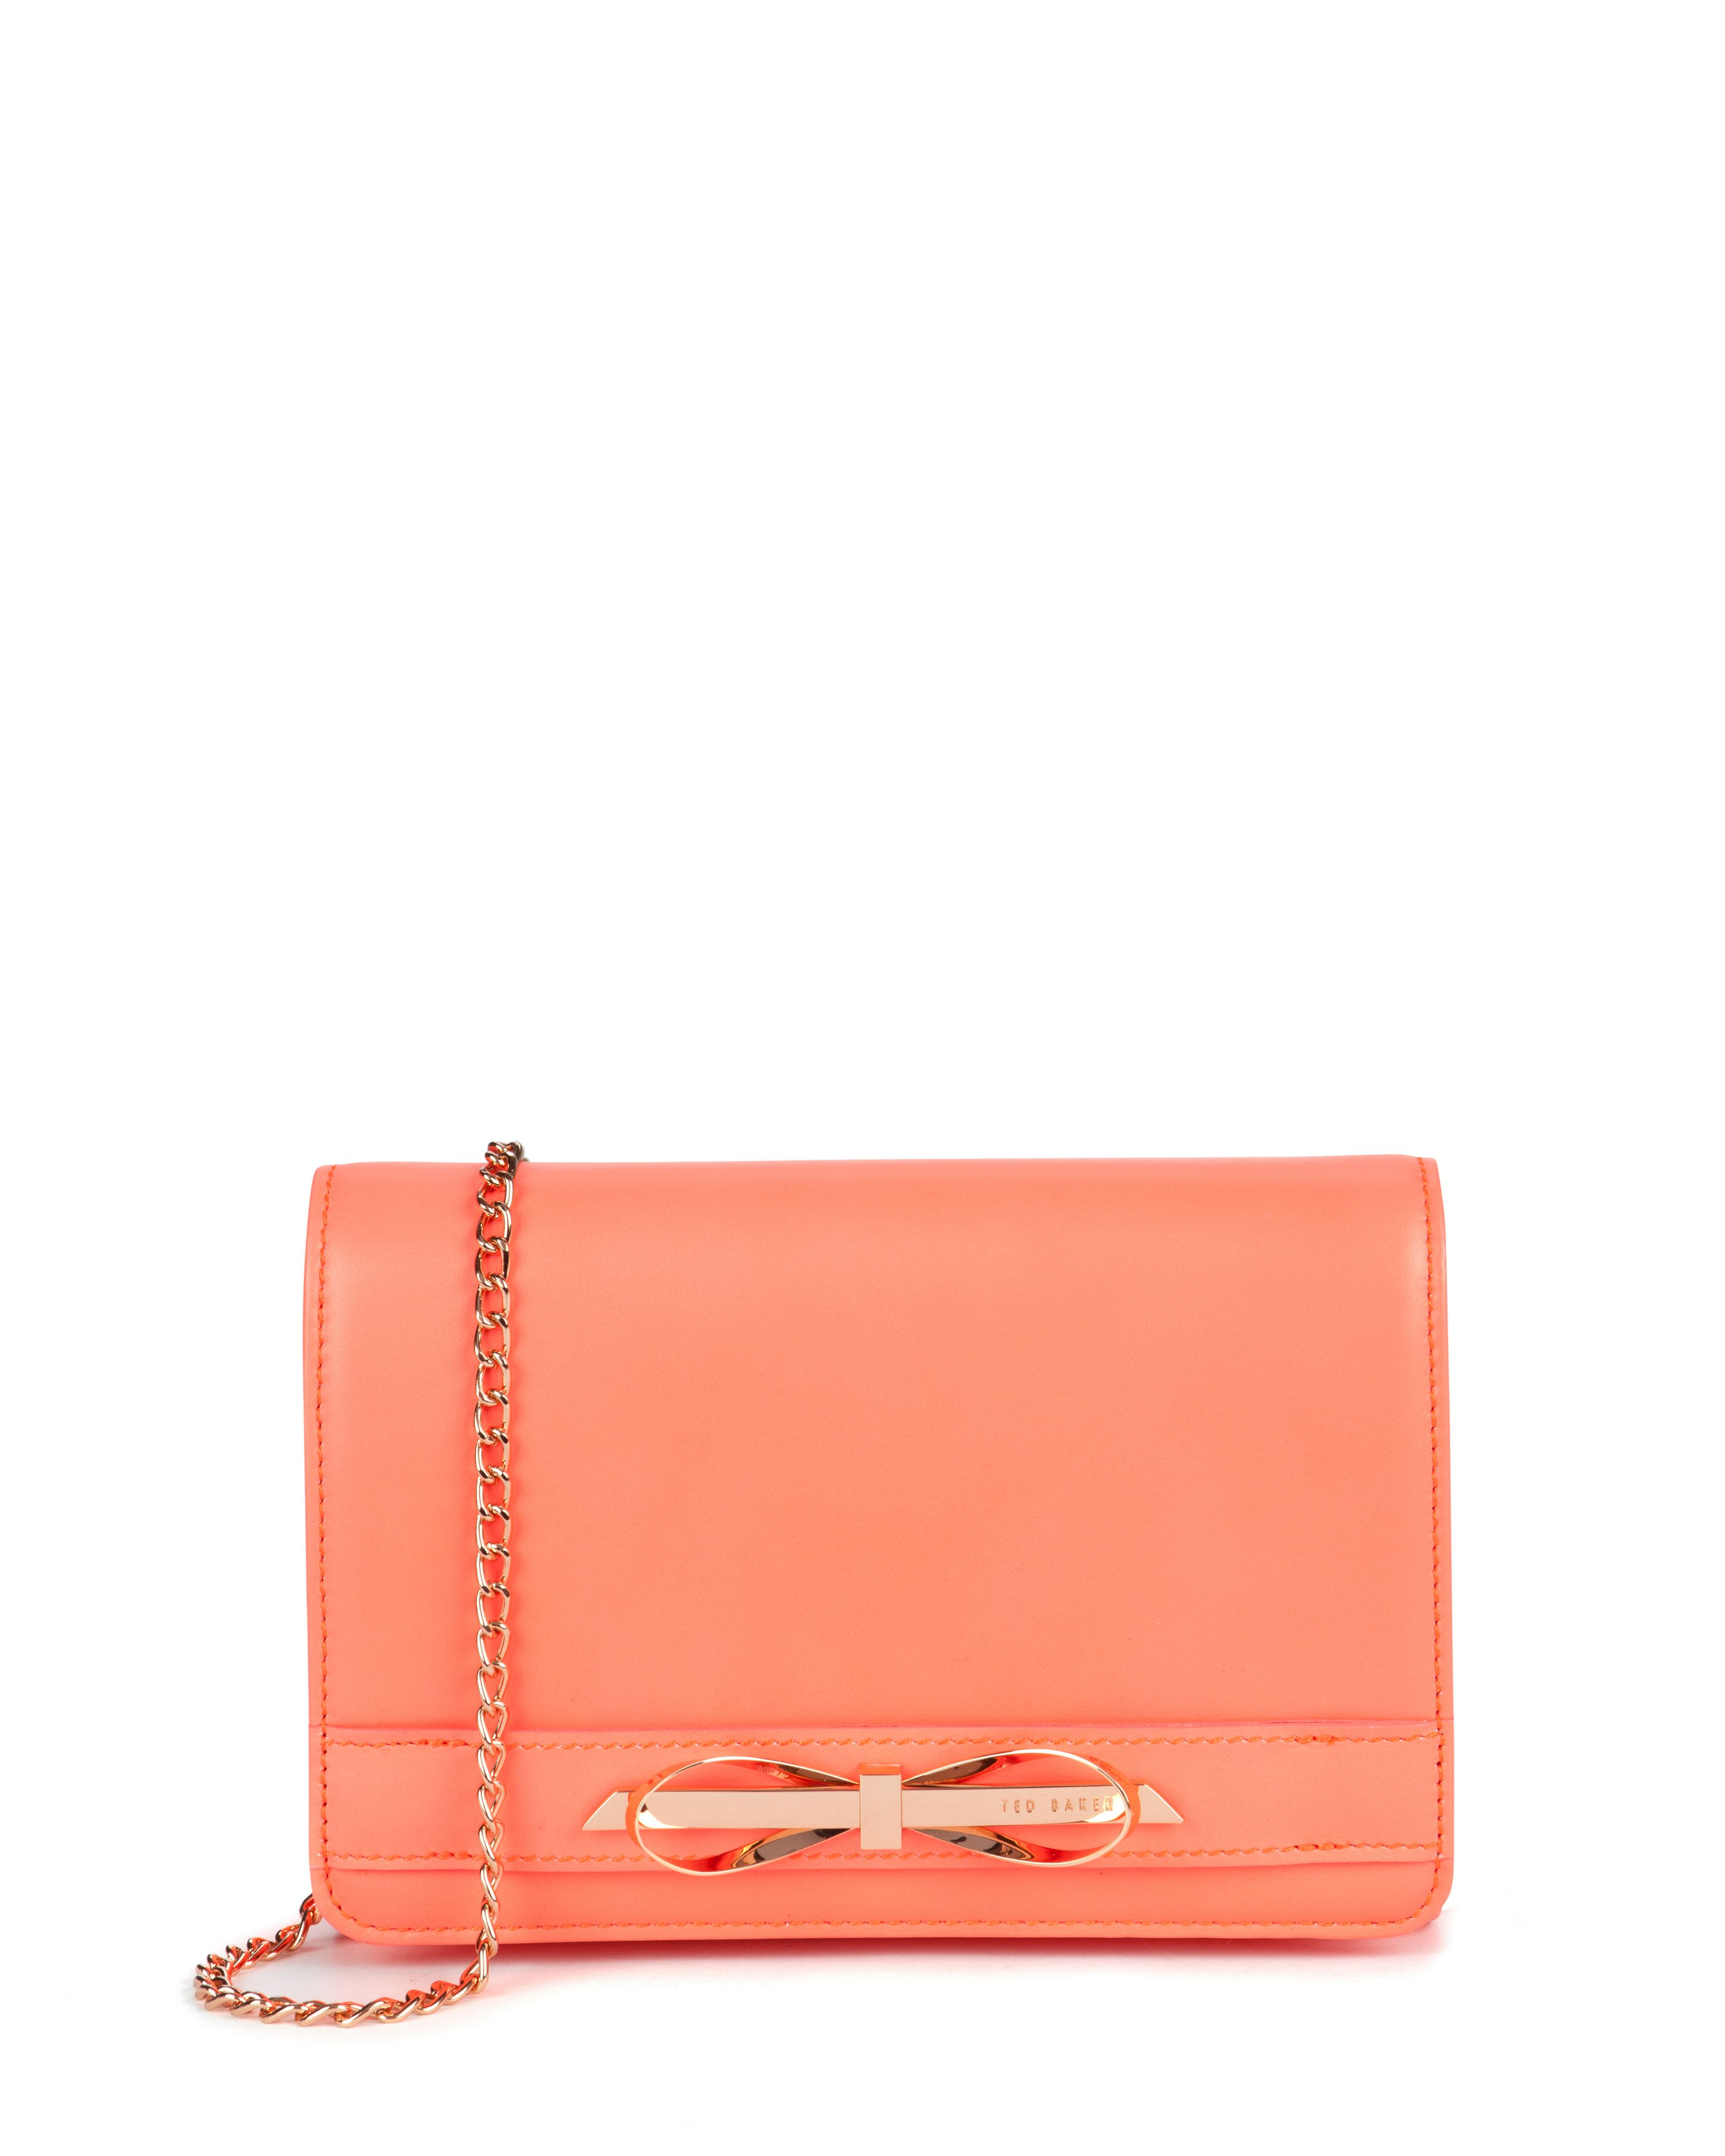 e95162d2b Ted Baker Phoebee Patent Leather Cross Body Bag in Orange - Lyst